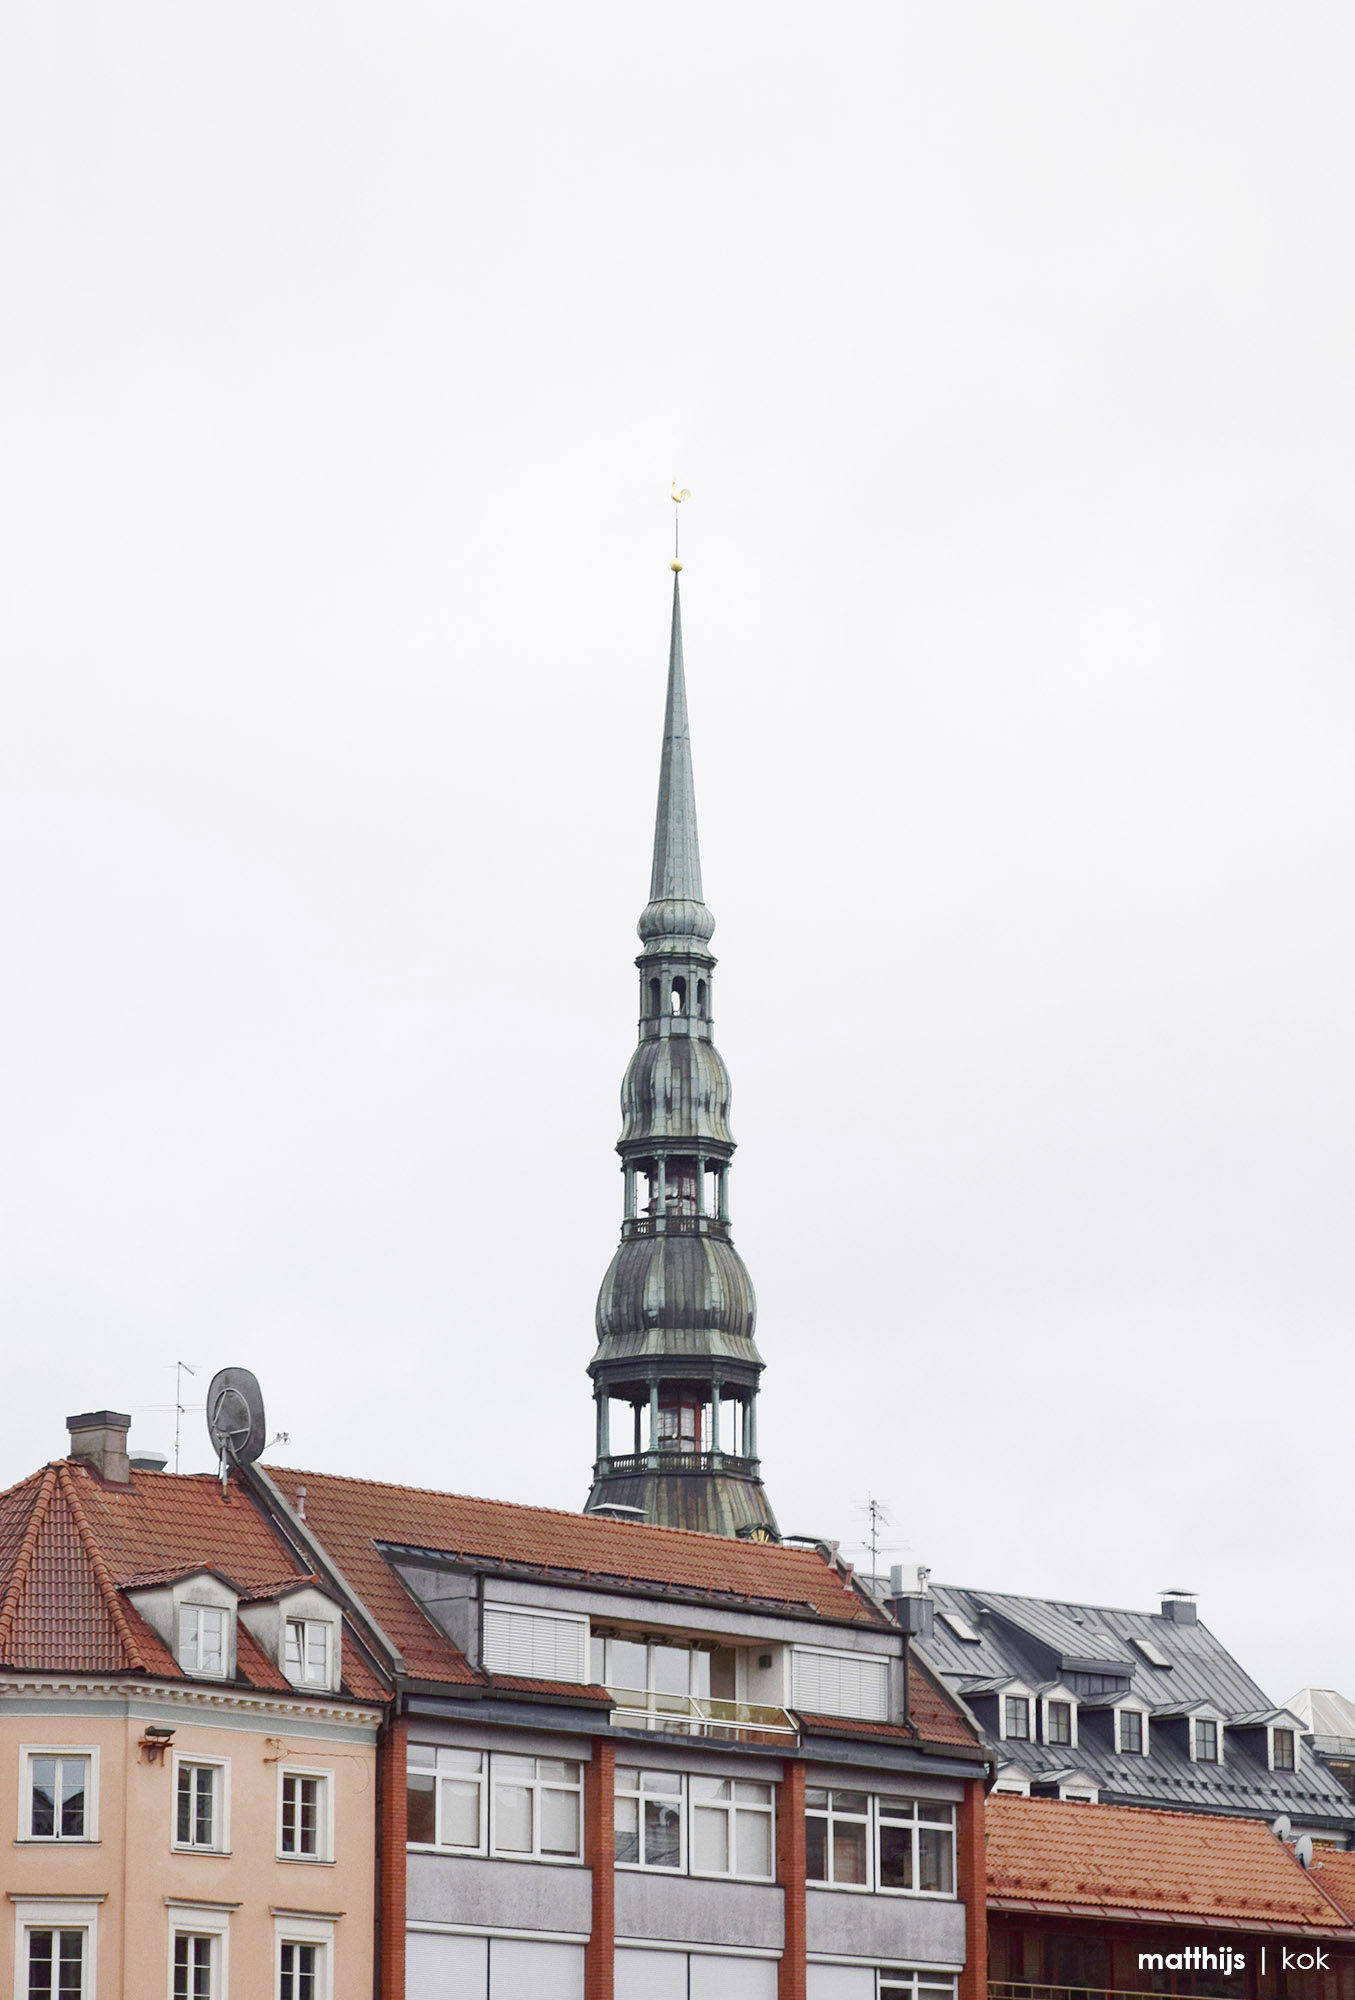 The spire of St. Peter's Church towering above the red clay and blue metal roofs of Riga Old Town, Latvia | Photo by Matthijs Kok